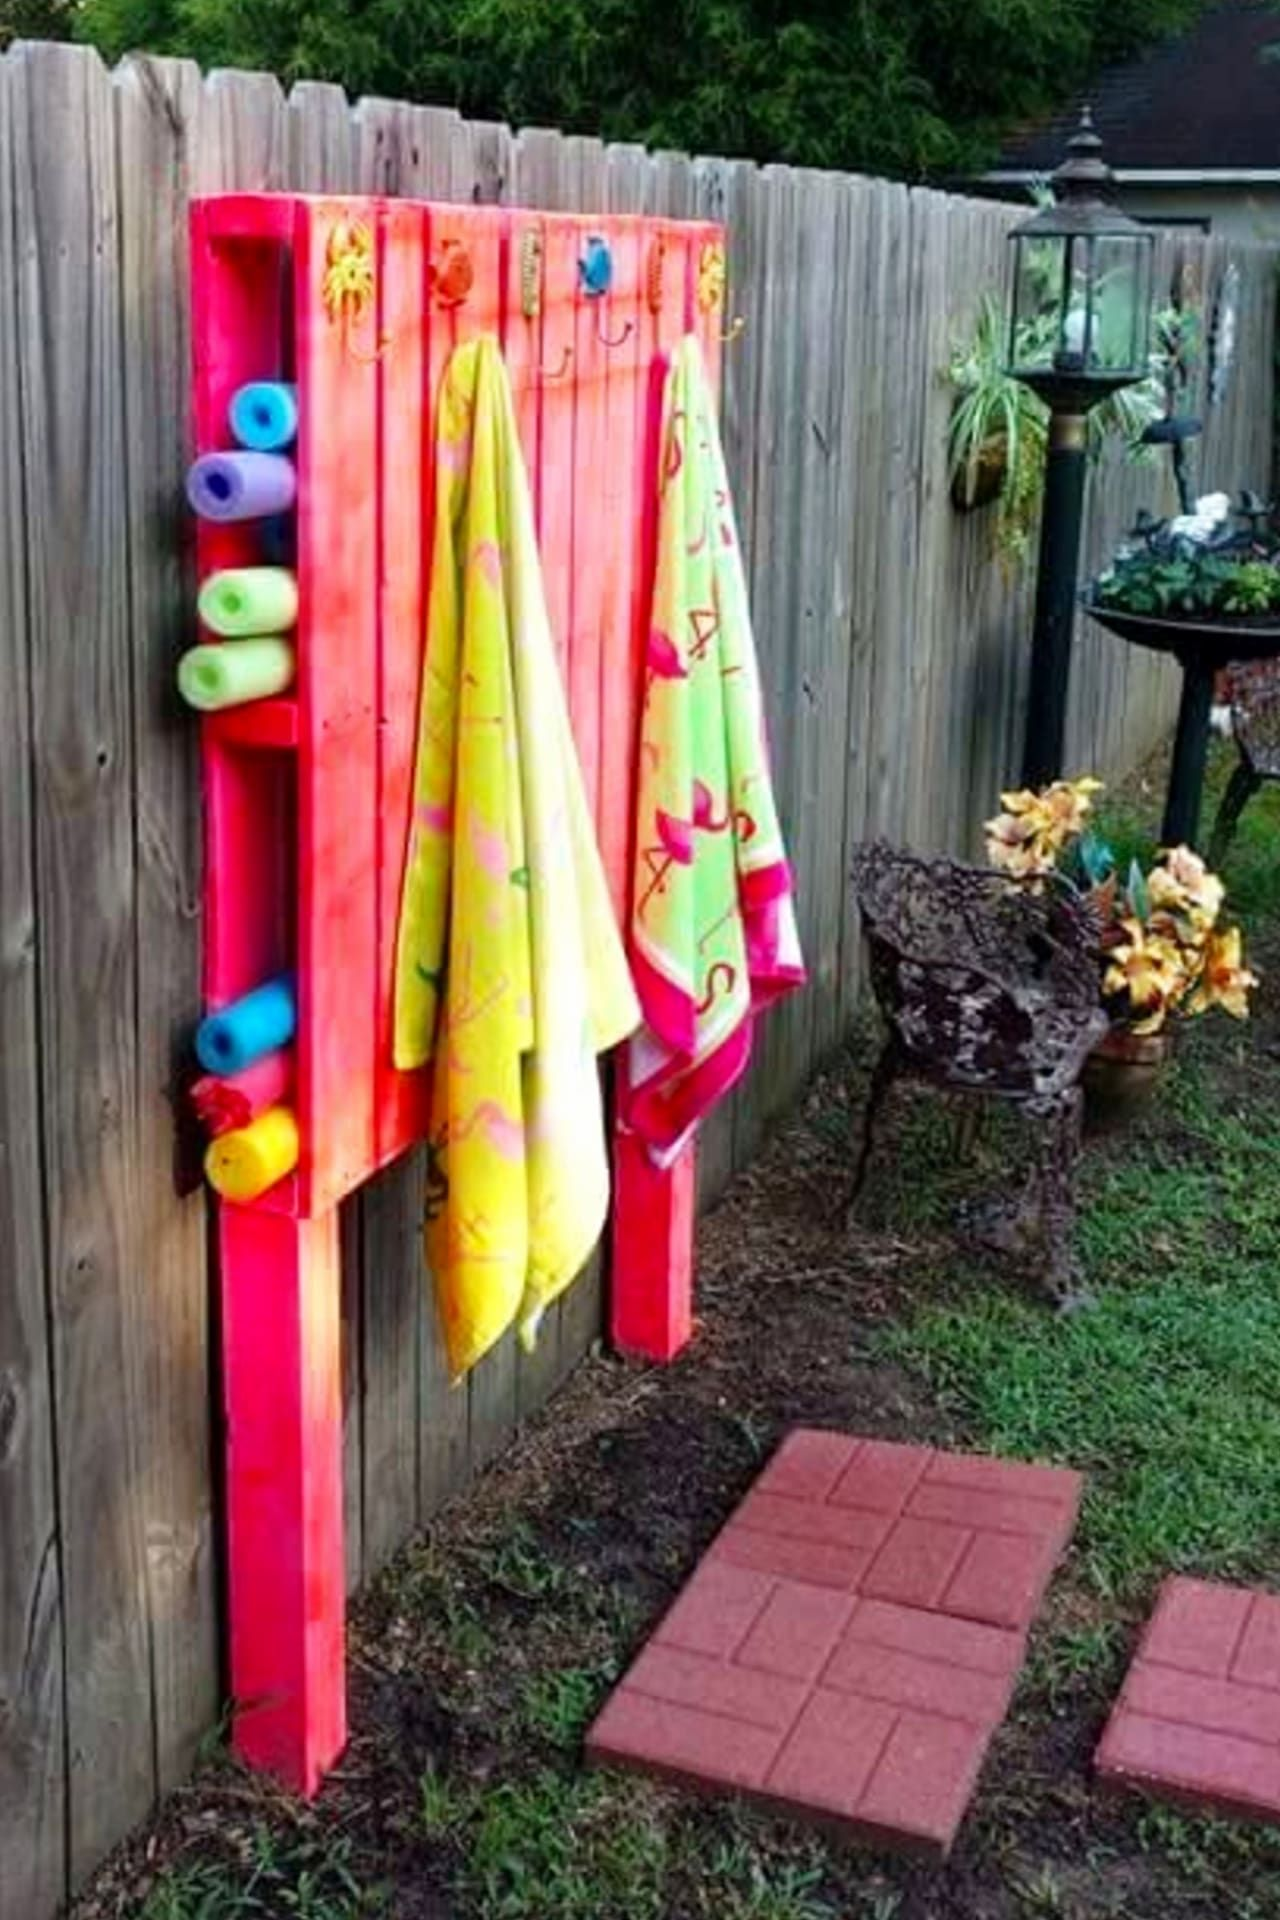 Pallet Projects - 19+ Clever, Crafty and Easy DIY Pallet Ideas - Clever DIY Ideas